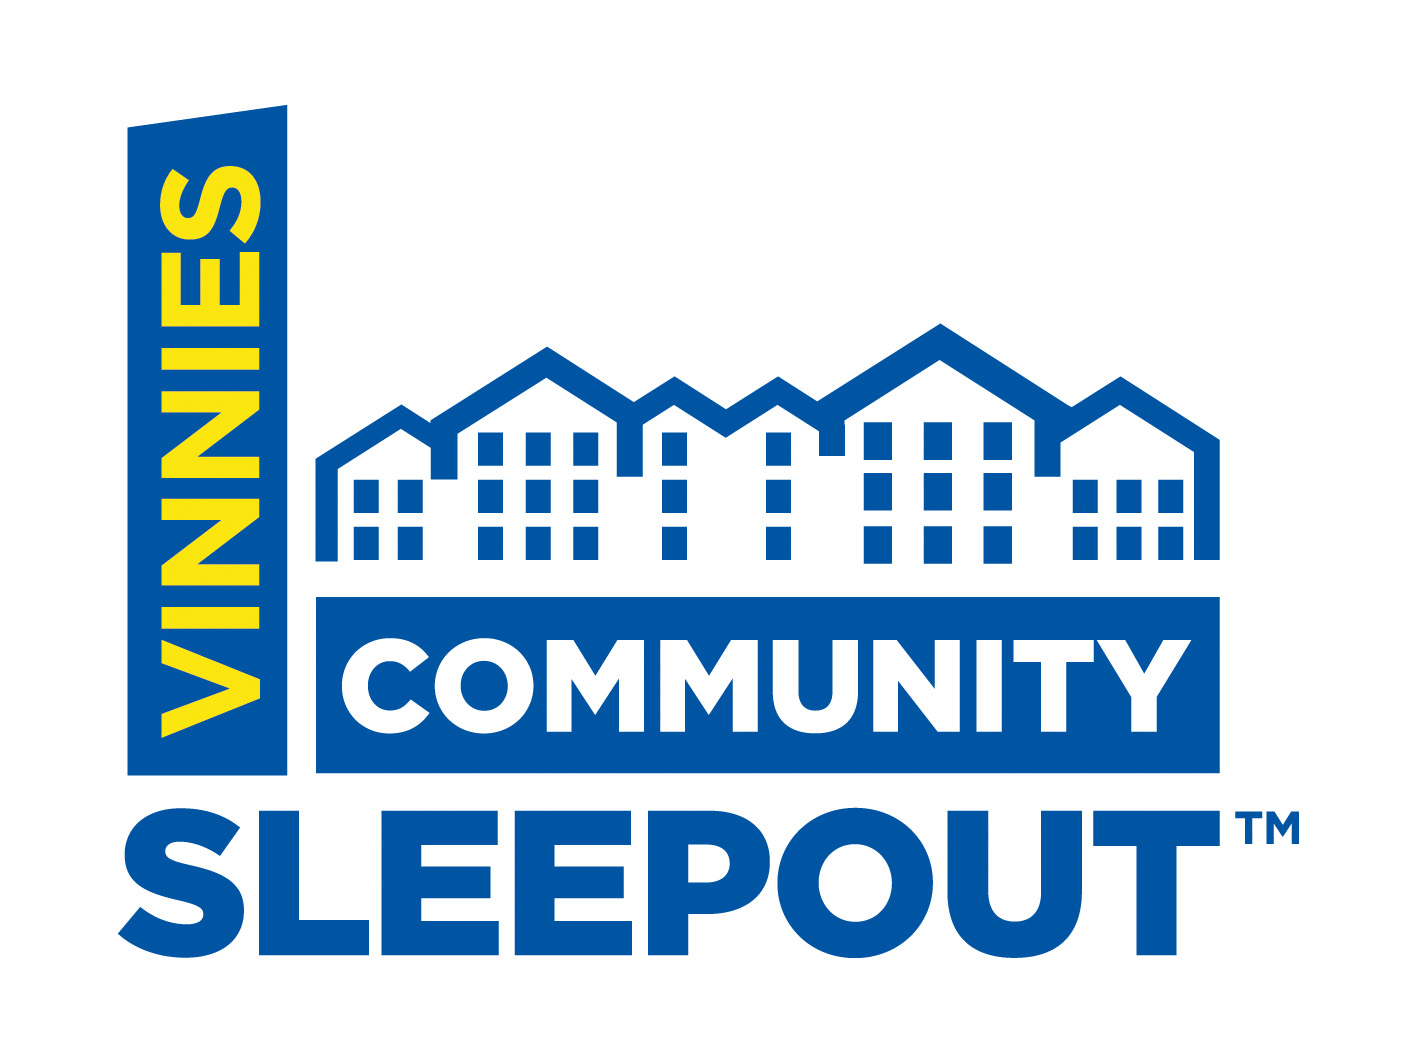 Vinnies Community Sleepout